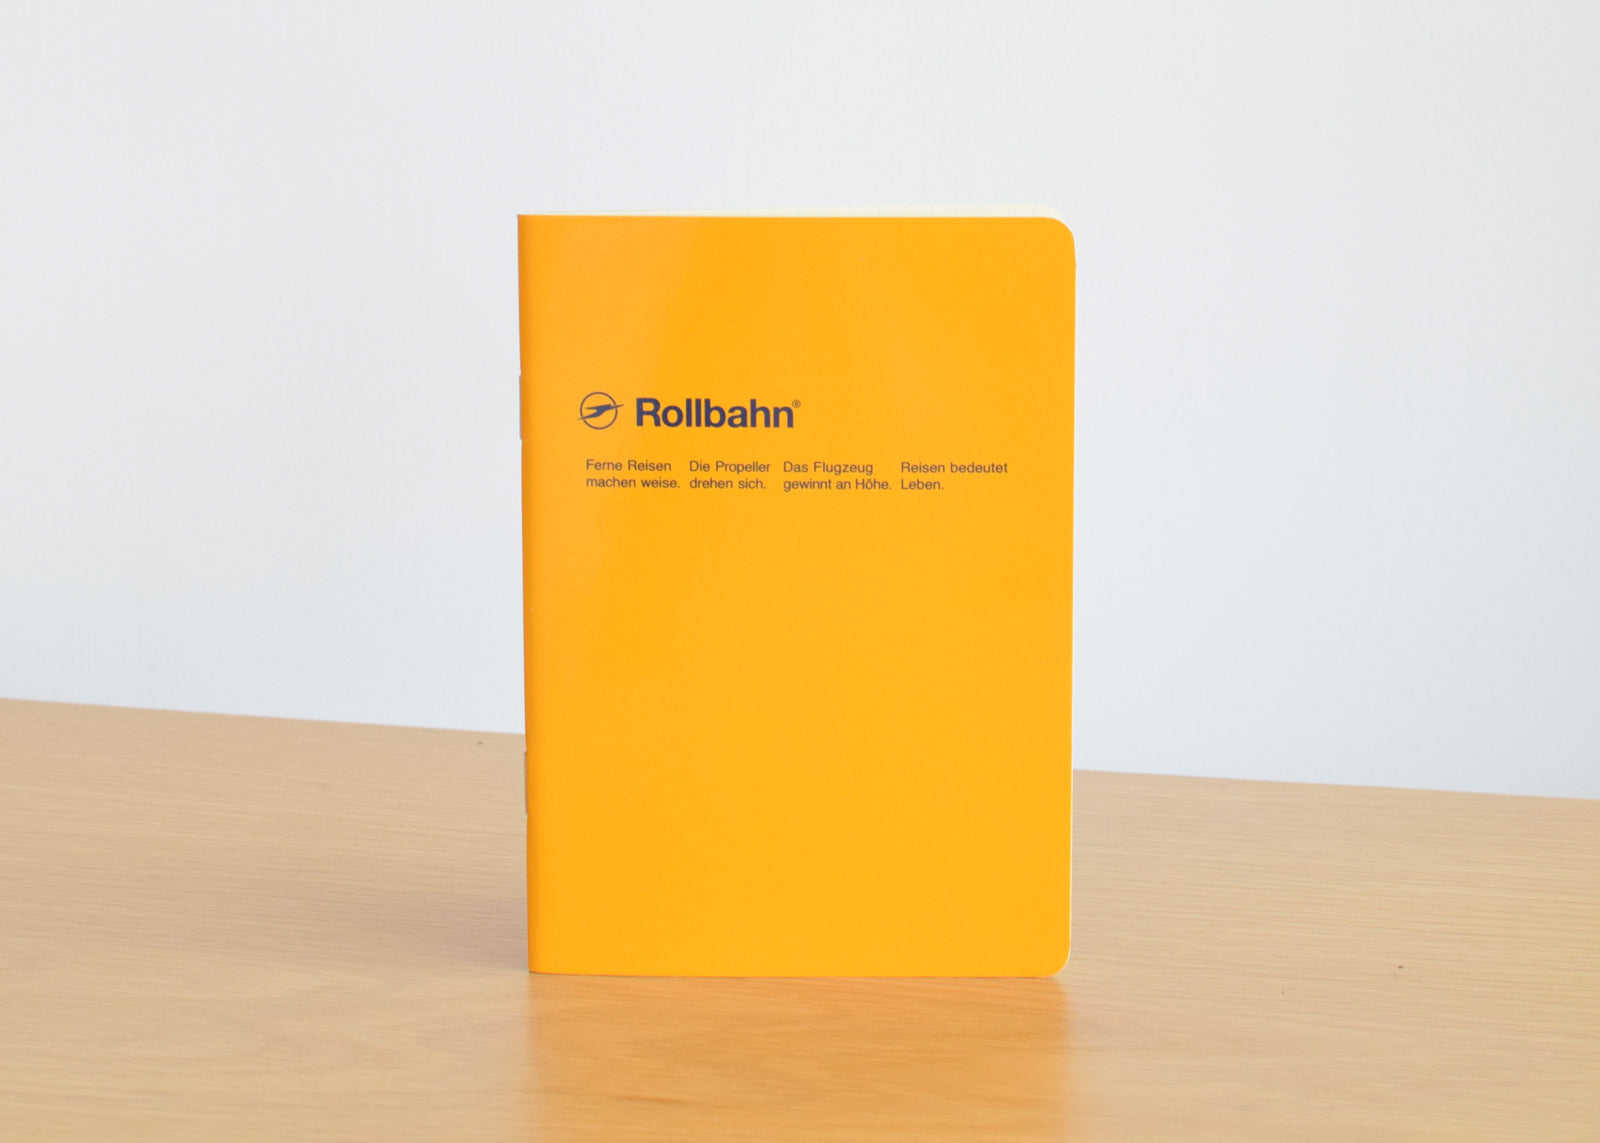 Available in a variety of colors, the Rollbahn 'Note' Notebook from Delfonics is fun and bright.